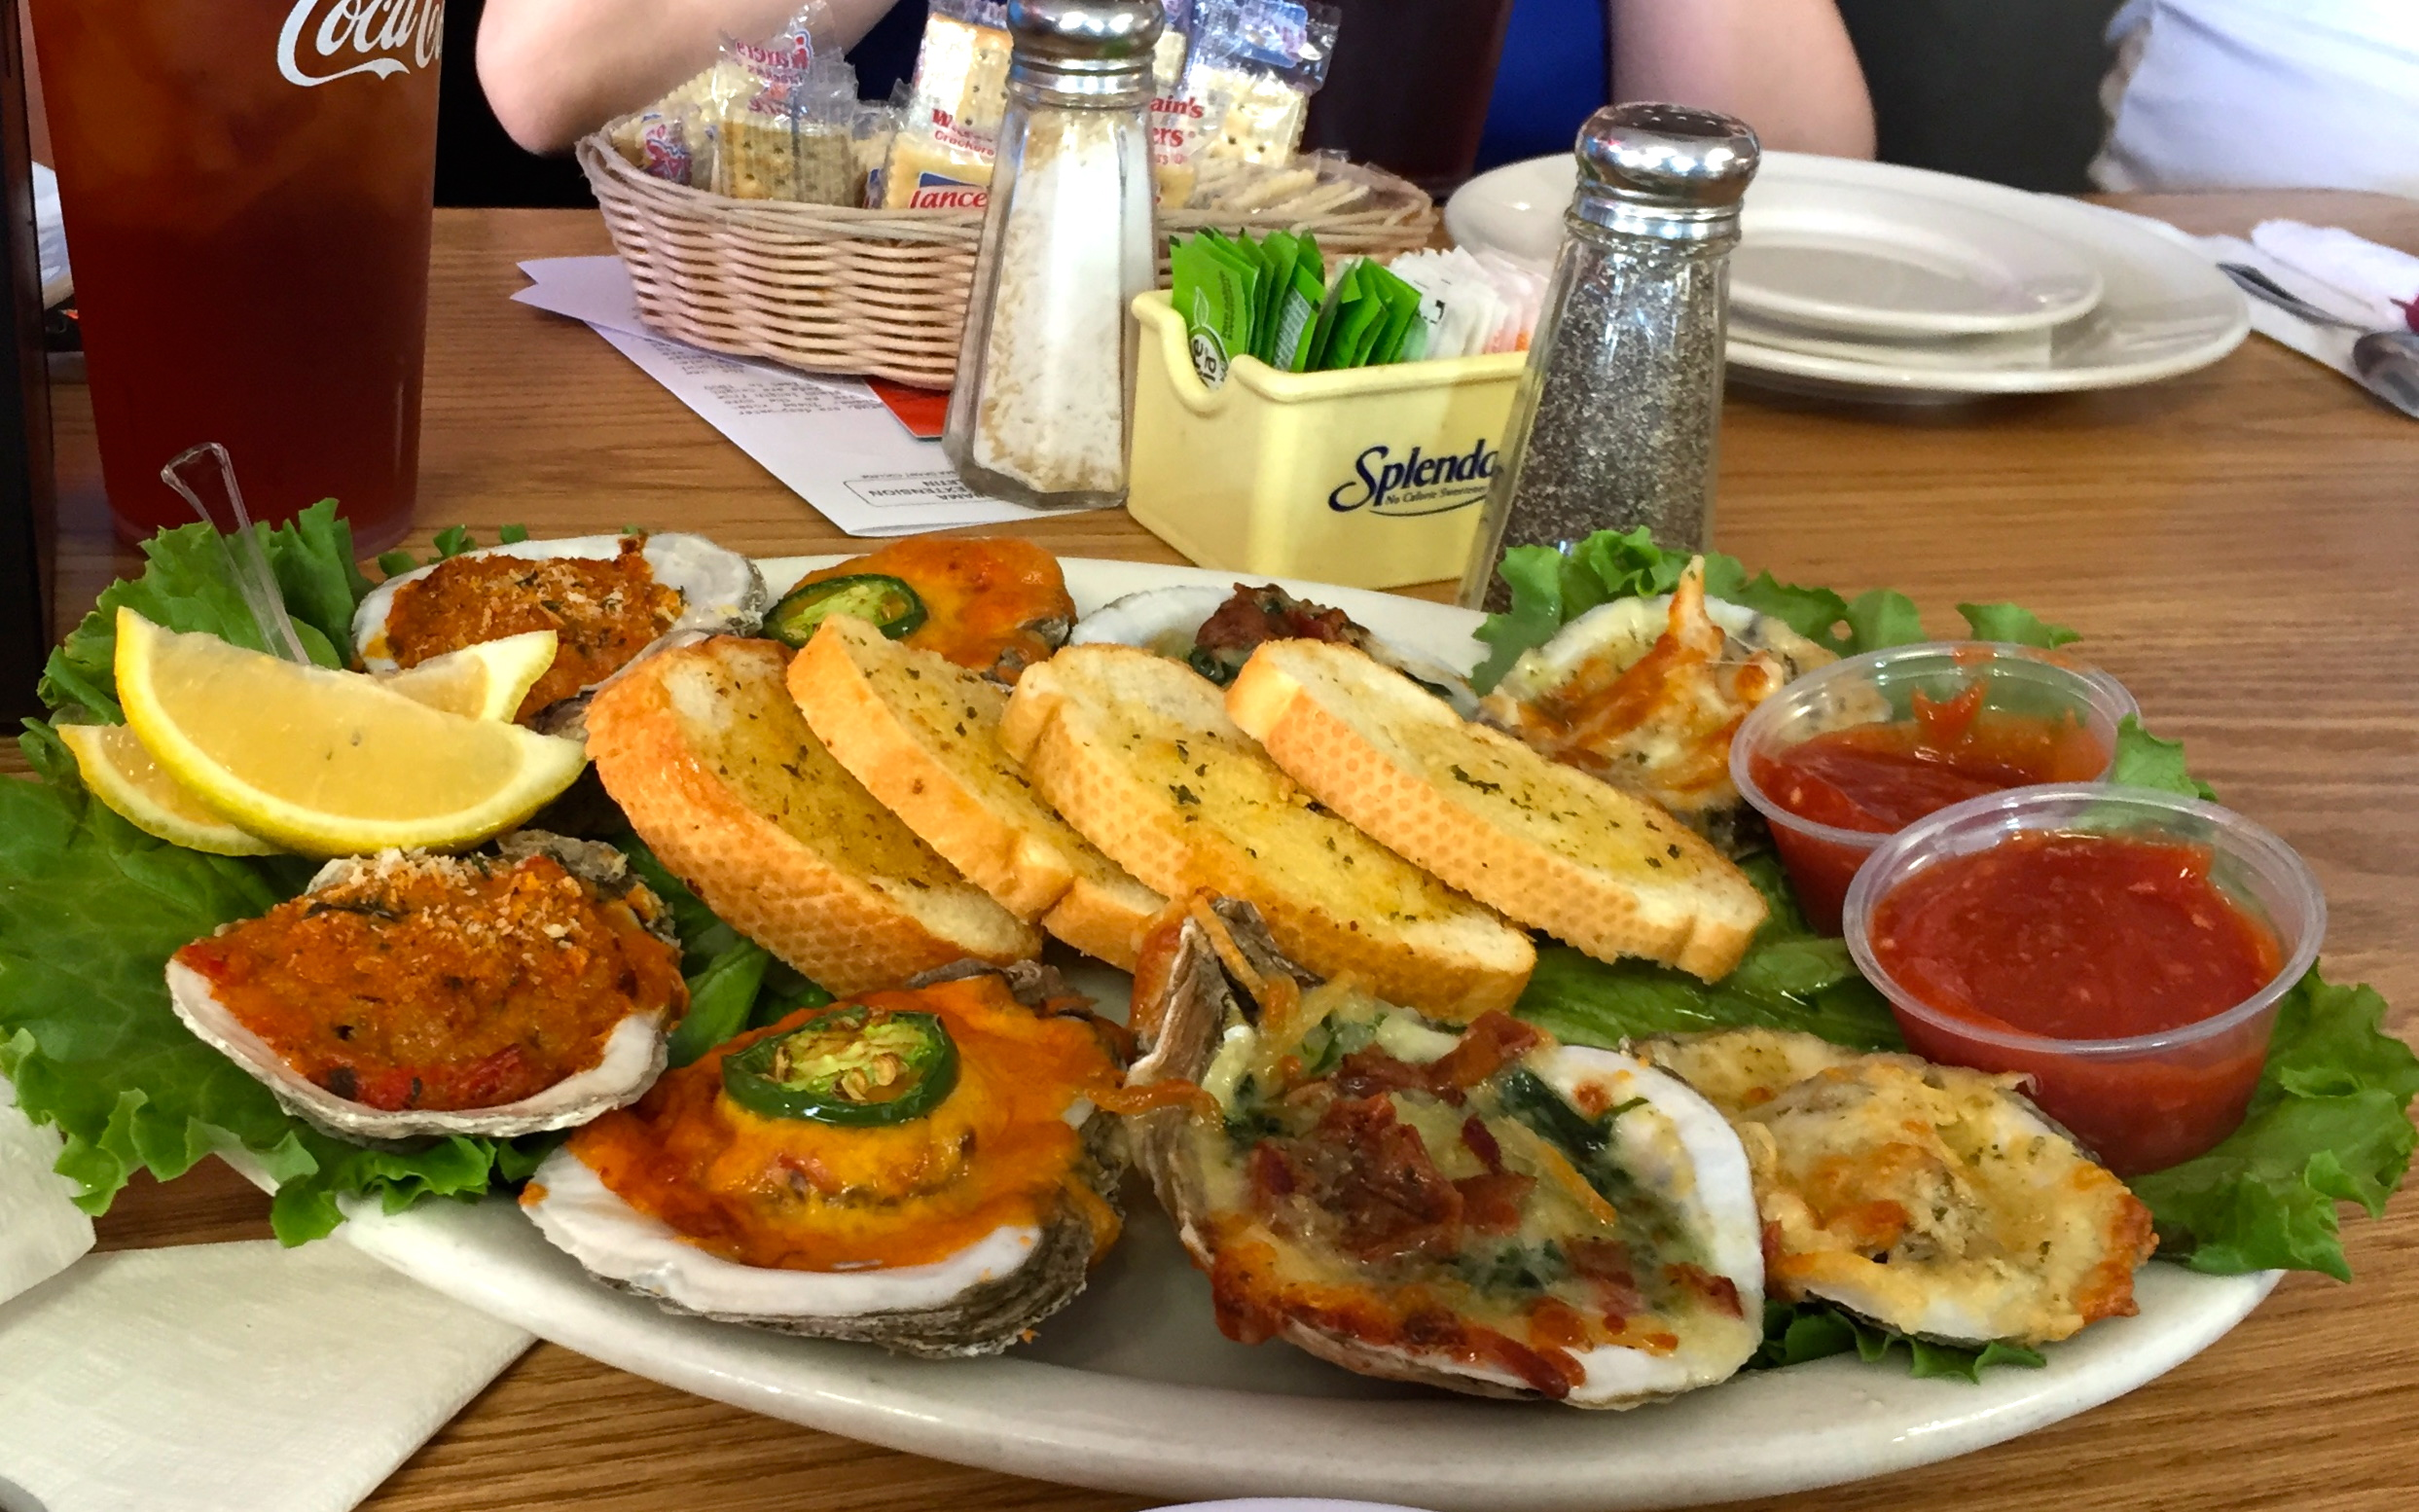 King Neptune's diner in Gulf Shores showcases killer selection of fresh oysters